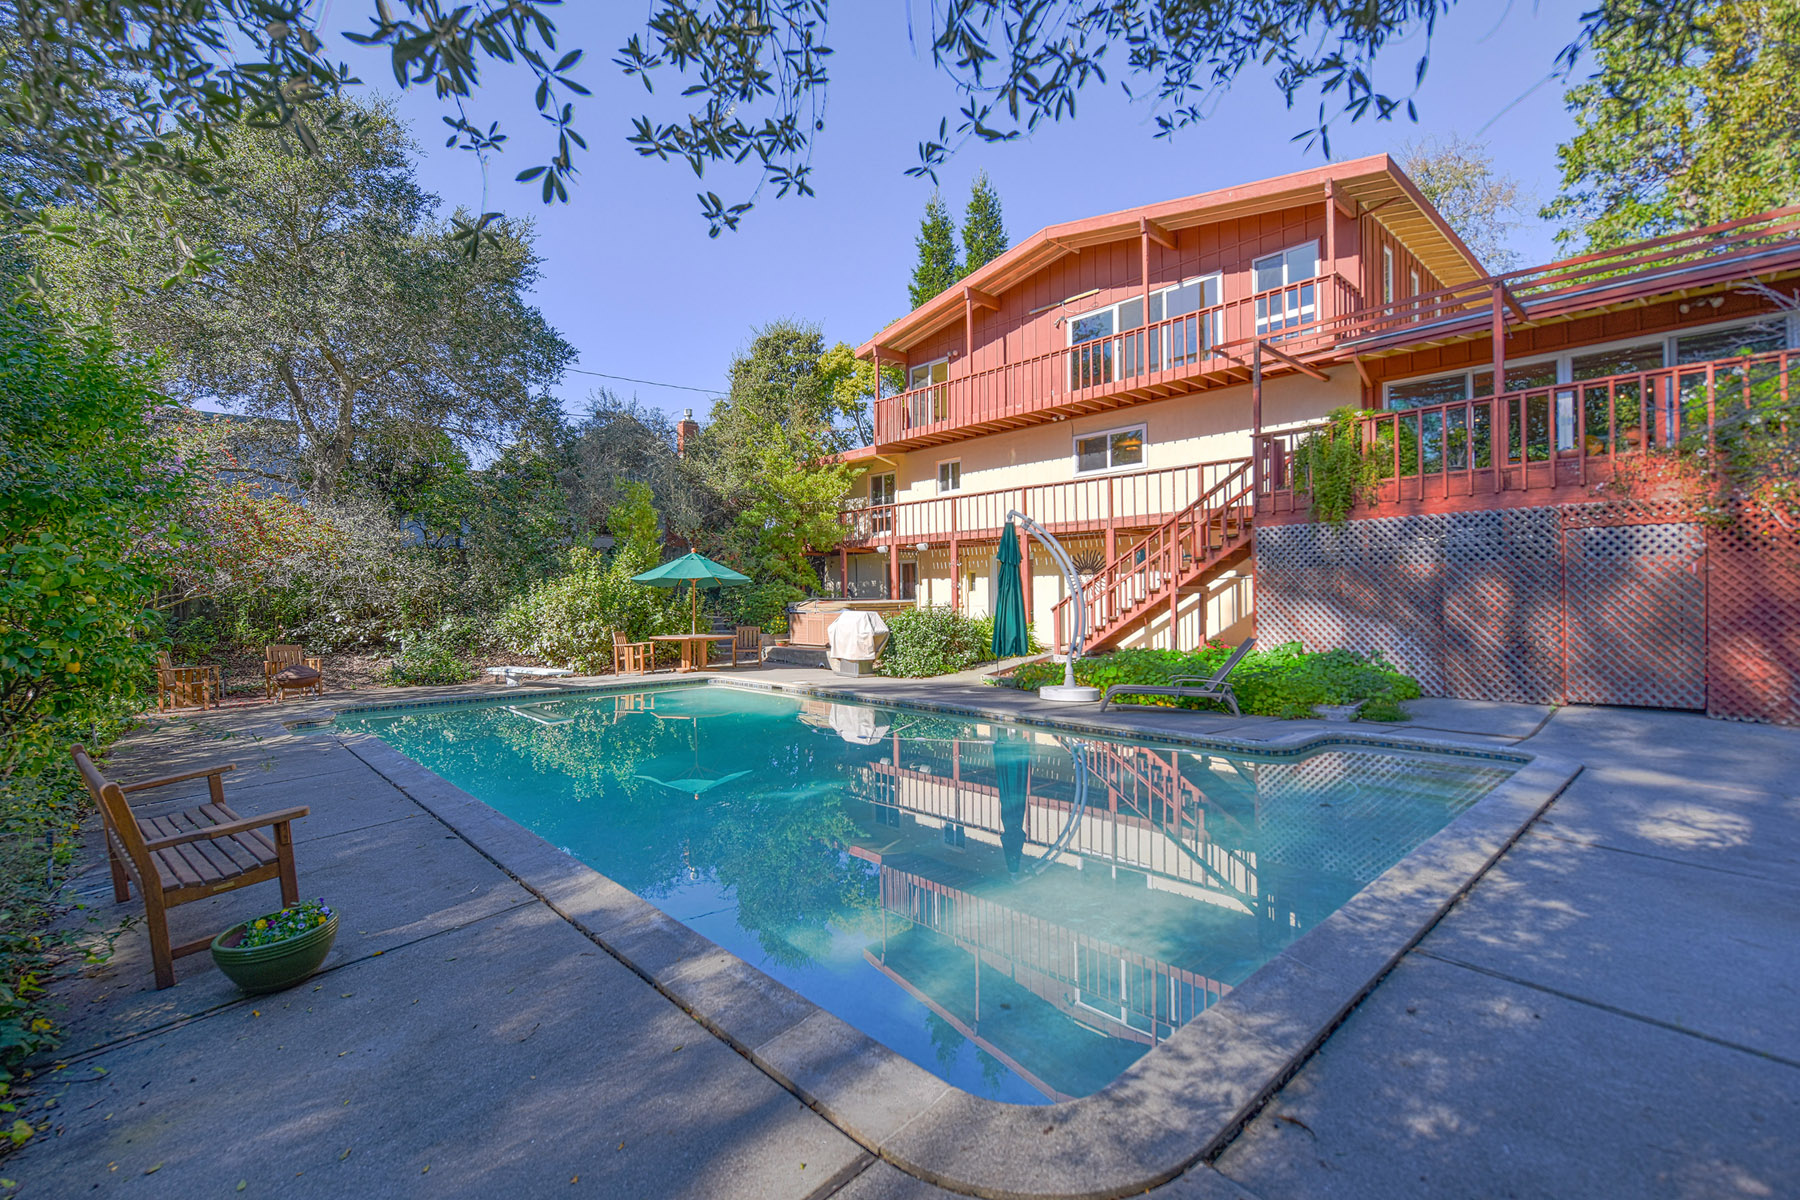 Single Family Home for Sale at Mid-Century Modern Design in a Stunning Setting 365 Montecito Boulevard, Napa, California, 94559 United States